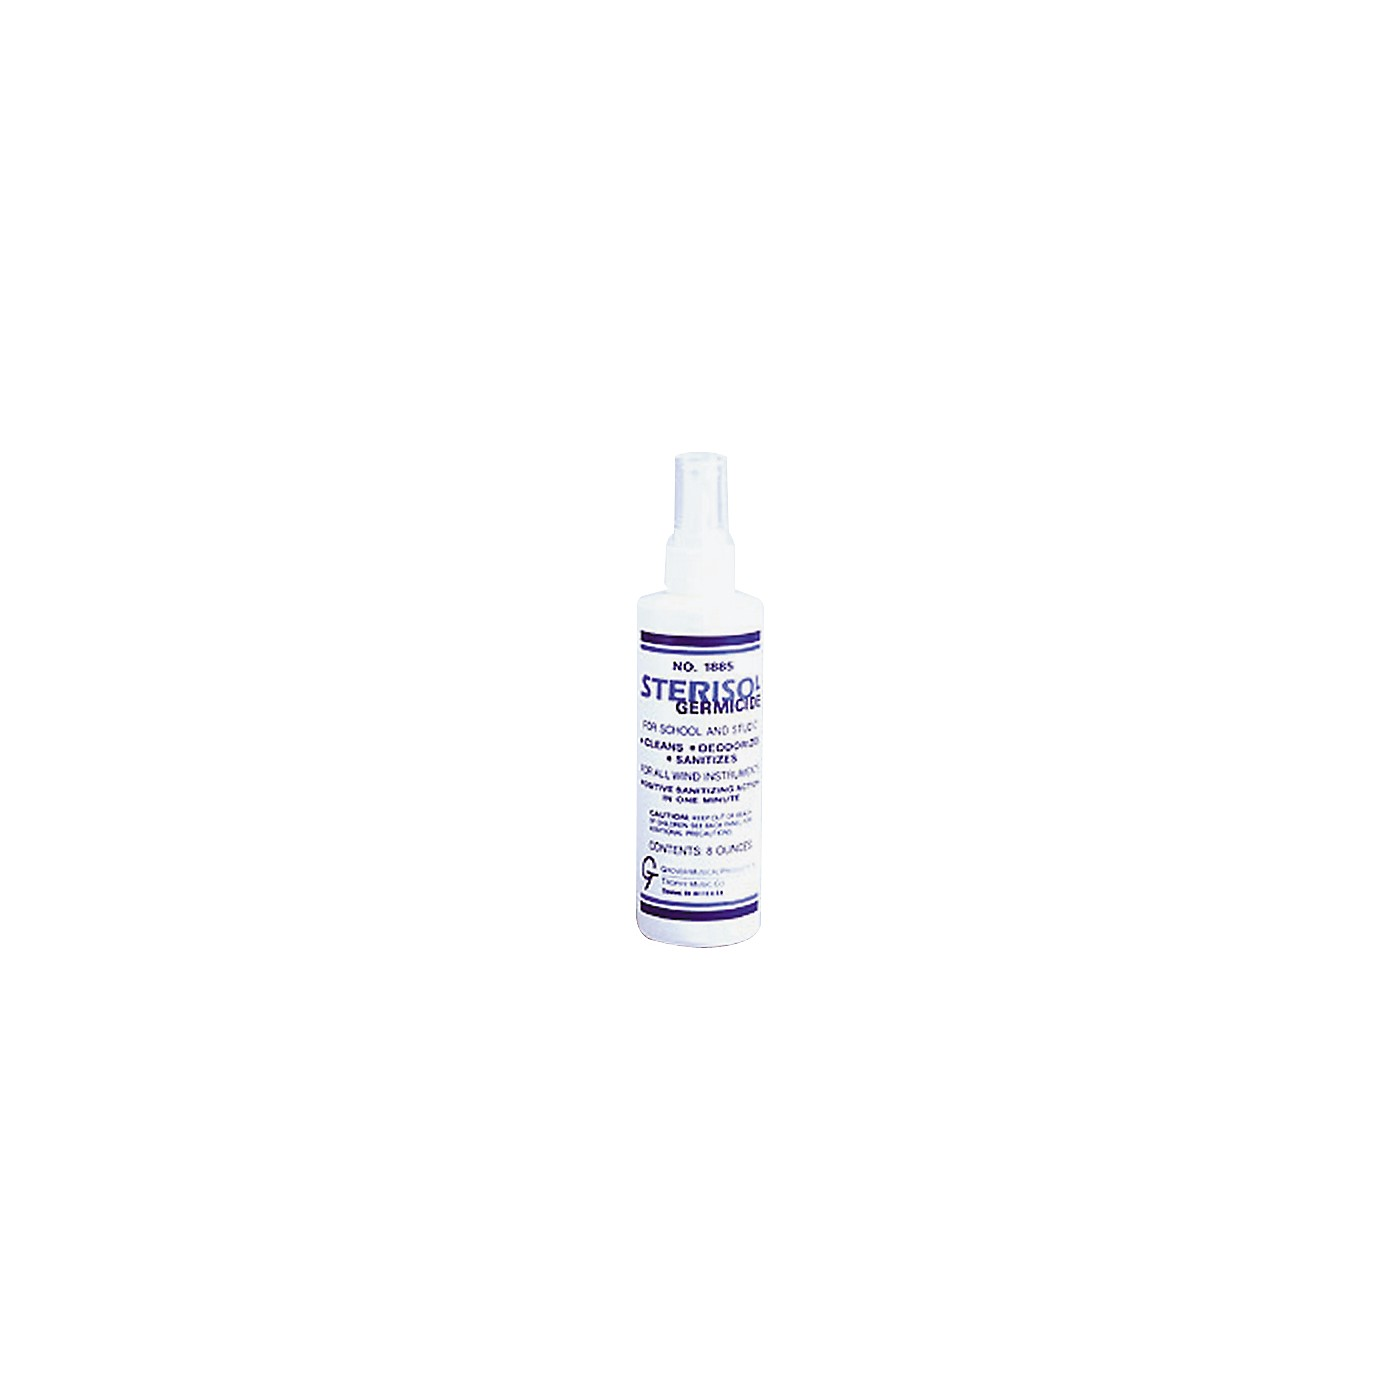 Sterisol 8oz. Premixed Germicide Spray thumbnail